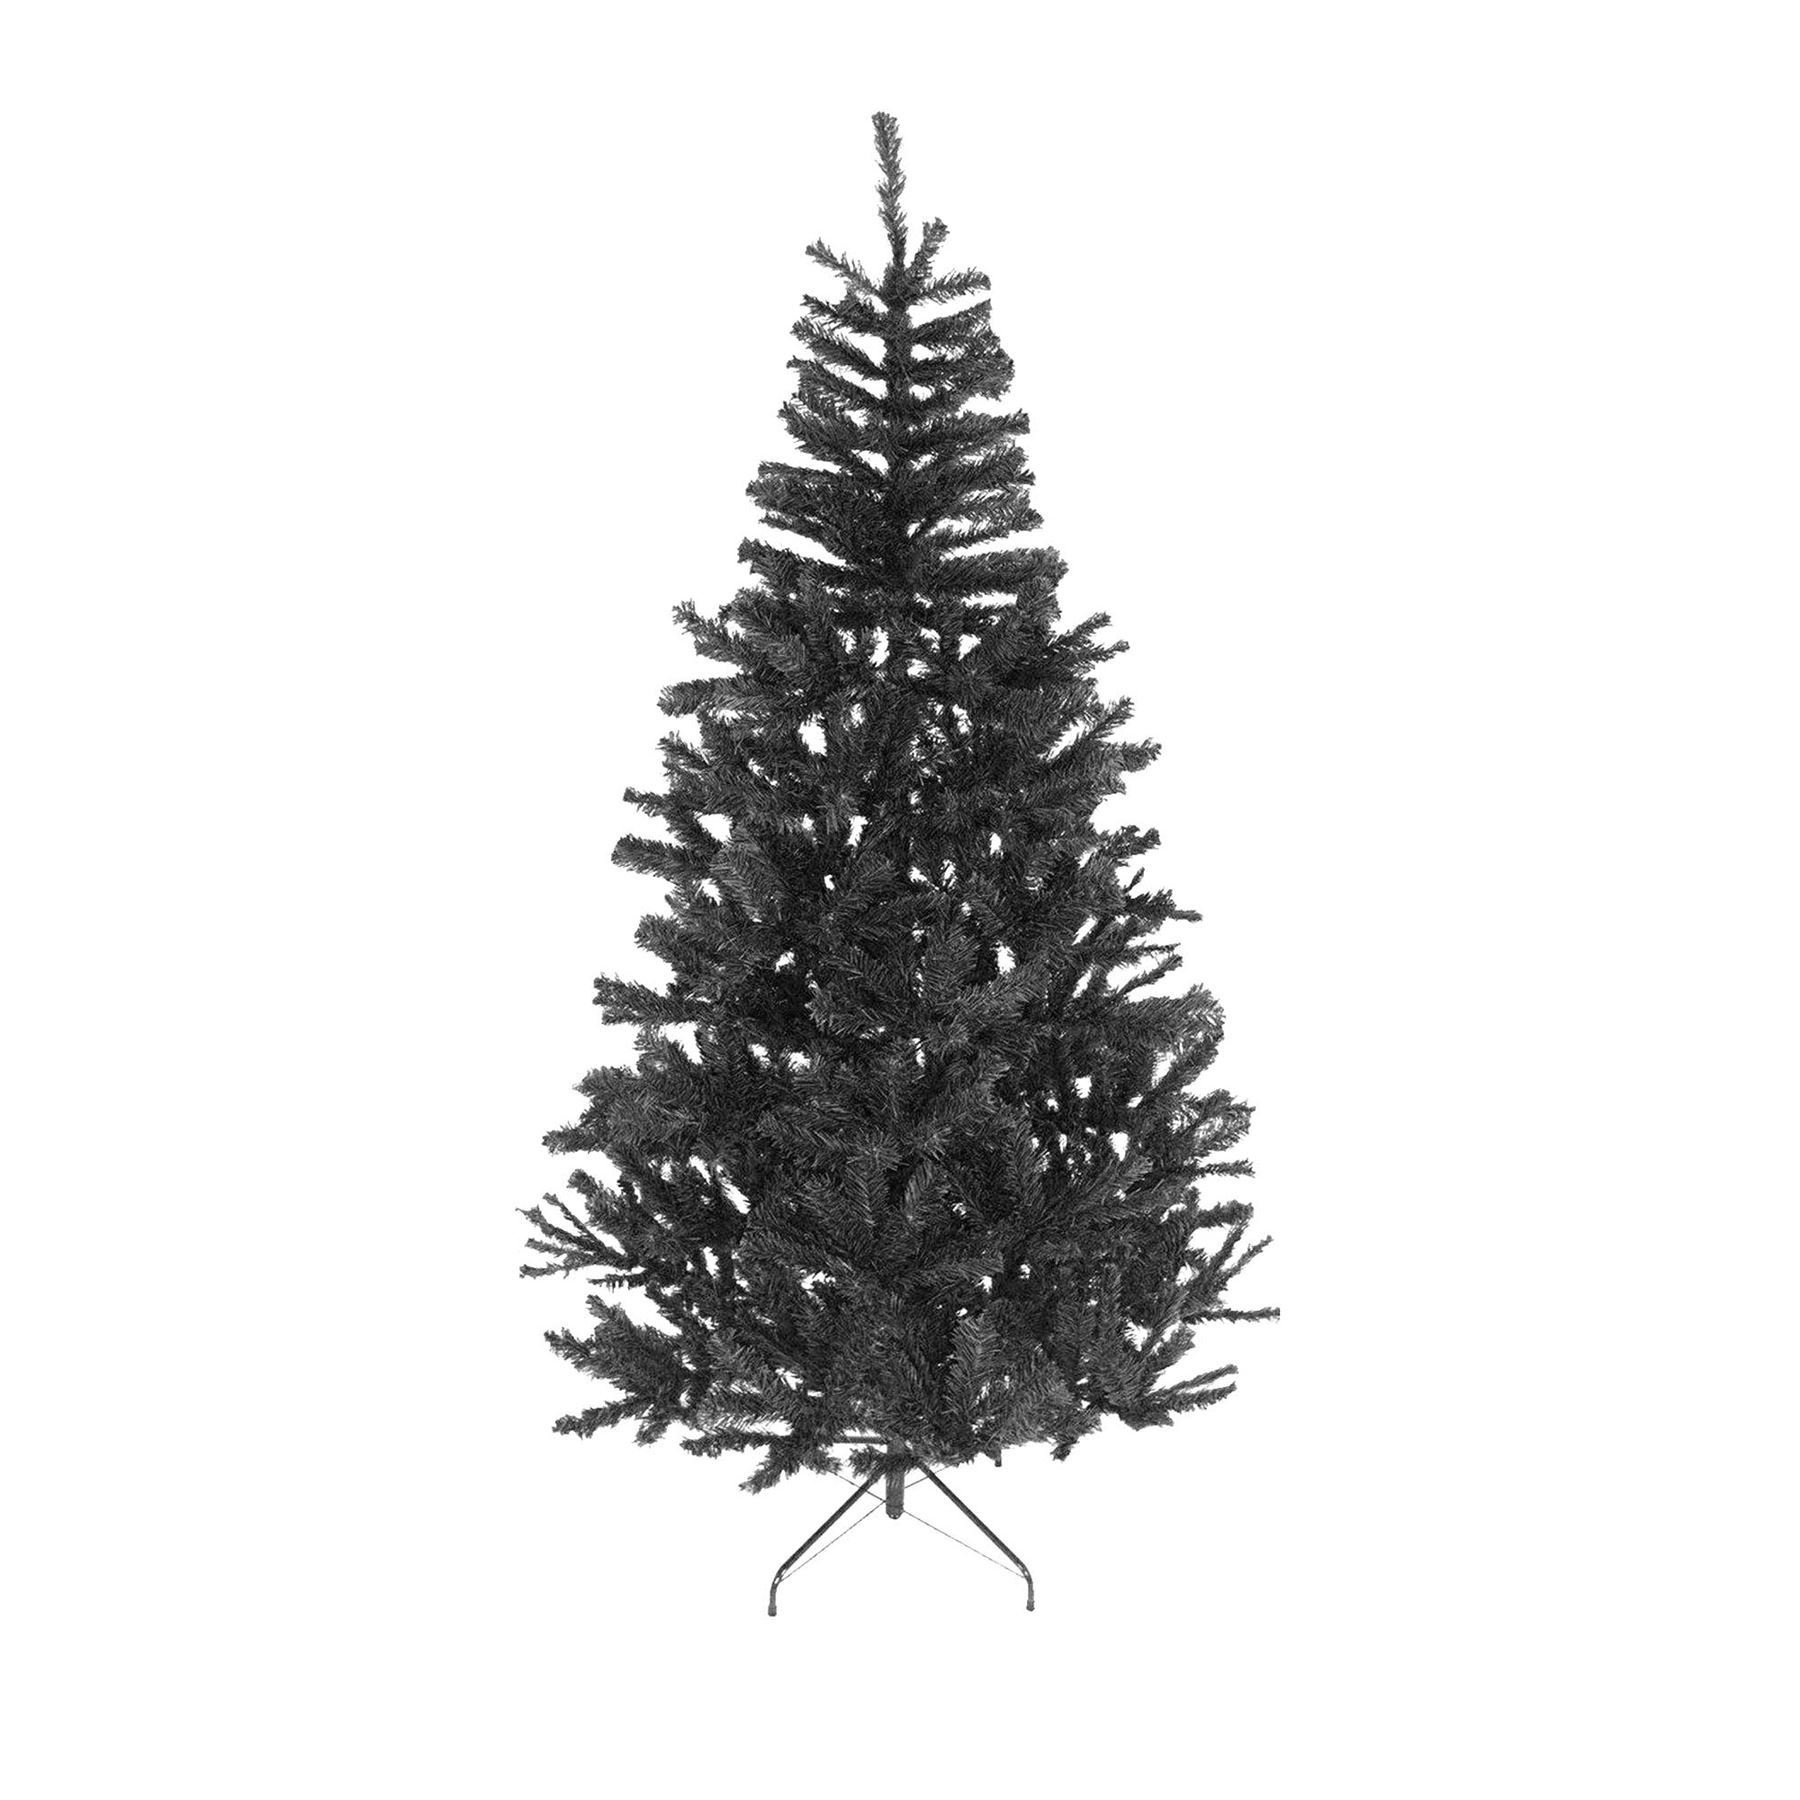 8ft Black Christmas Tree Imperial Tips Artificial Tree with Metal Stand